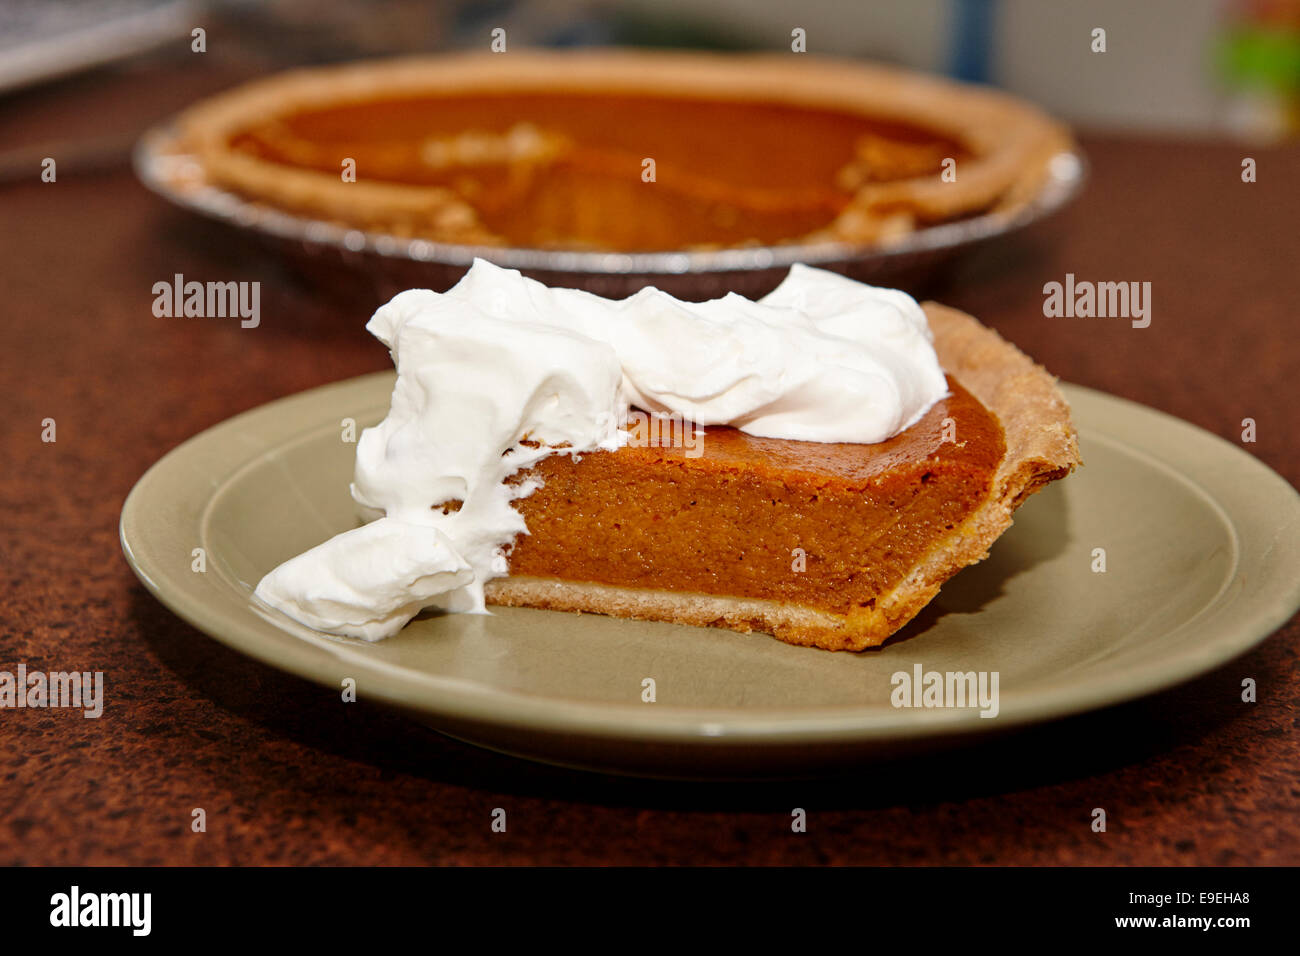 slice of mass produced pumpkin pie with whipped cream - Stock Image